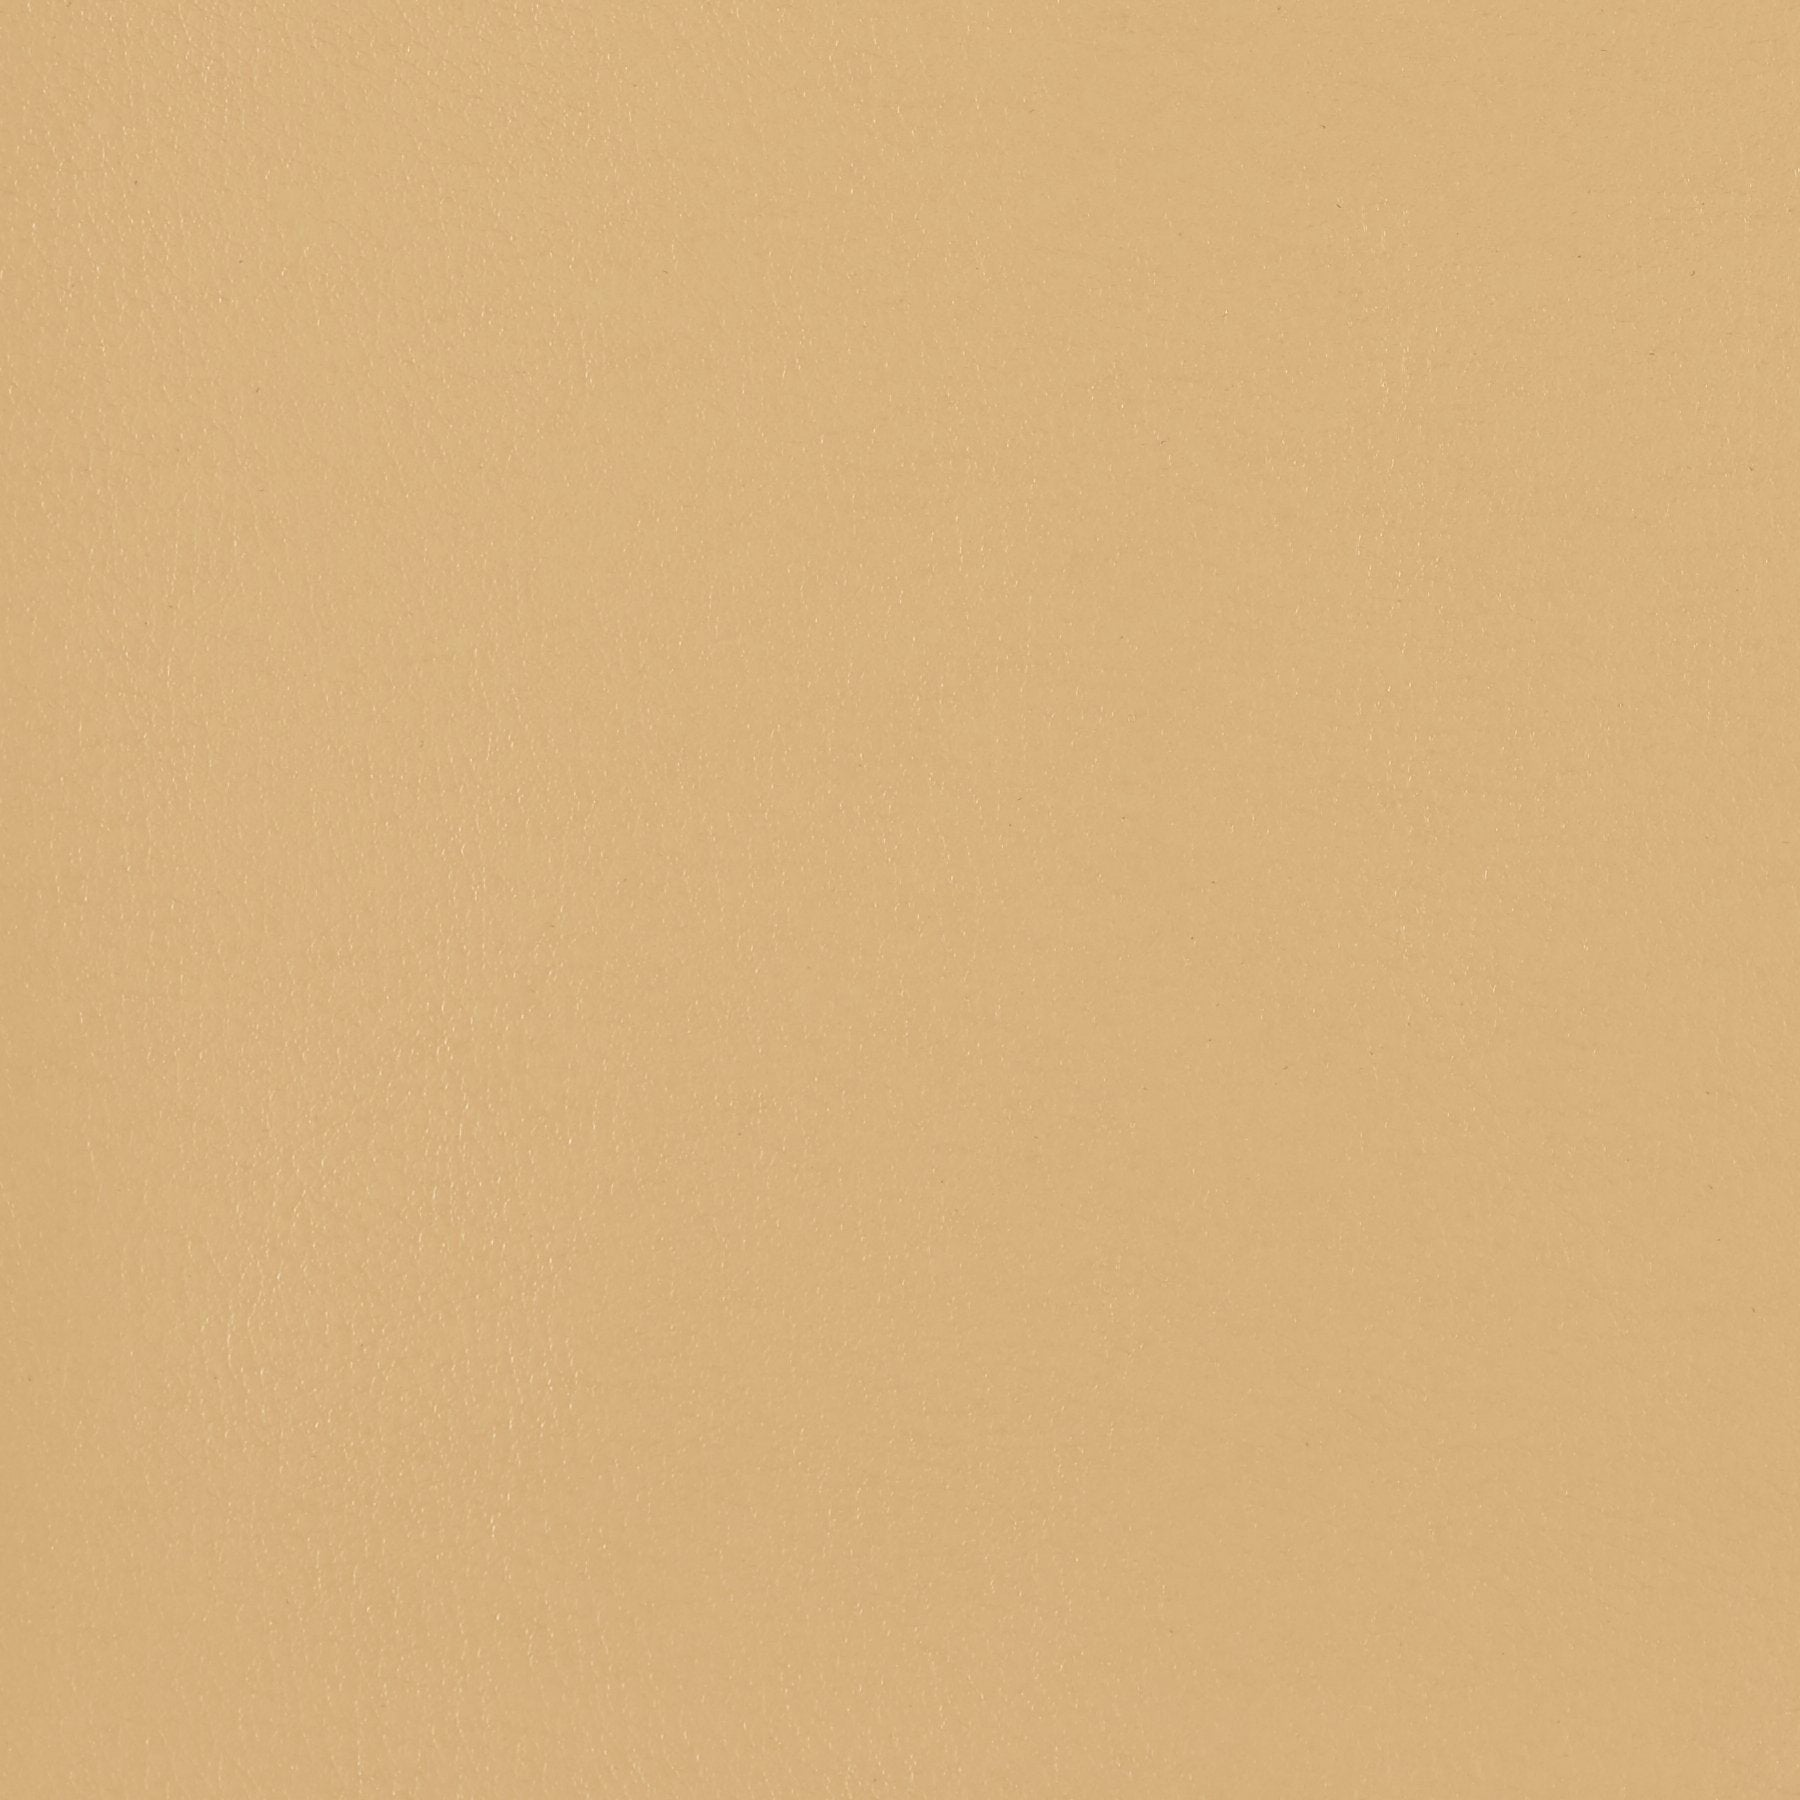 French Beige|4046-15-F415|French Beige 4046-15-F415